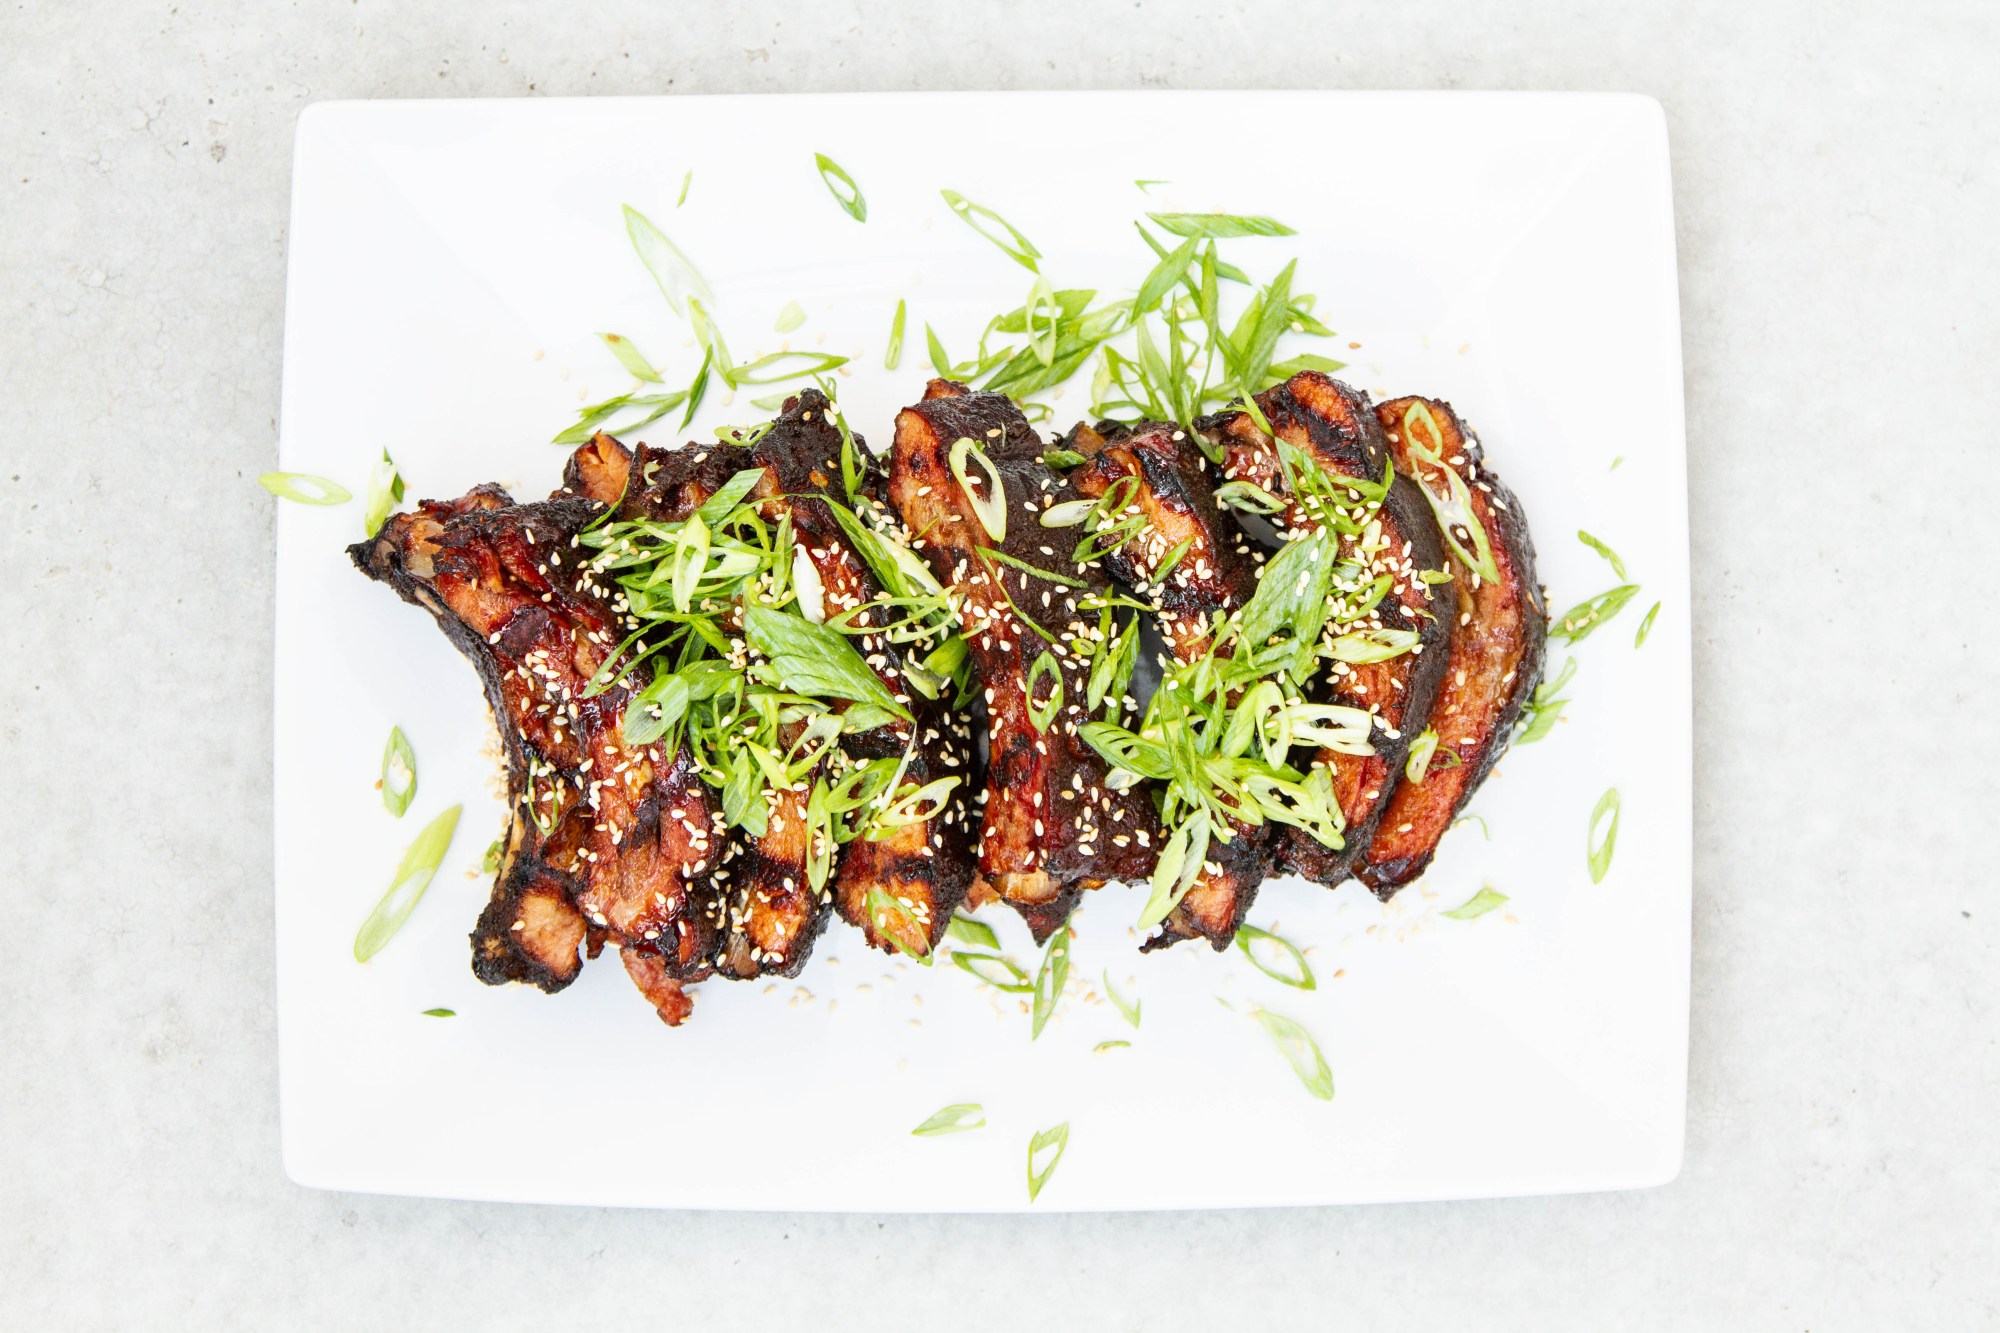 hight resolution of smoked asian style sticky ribs